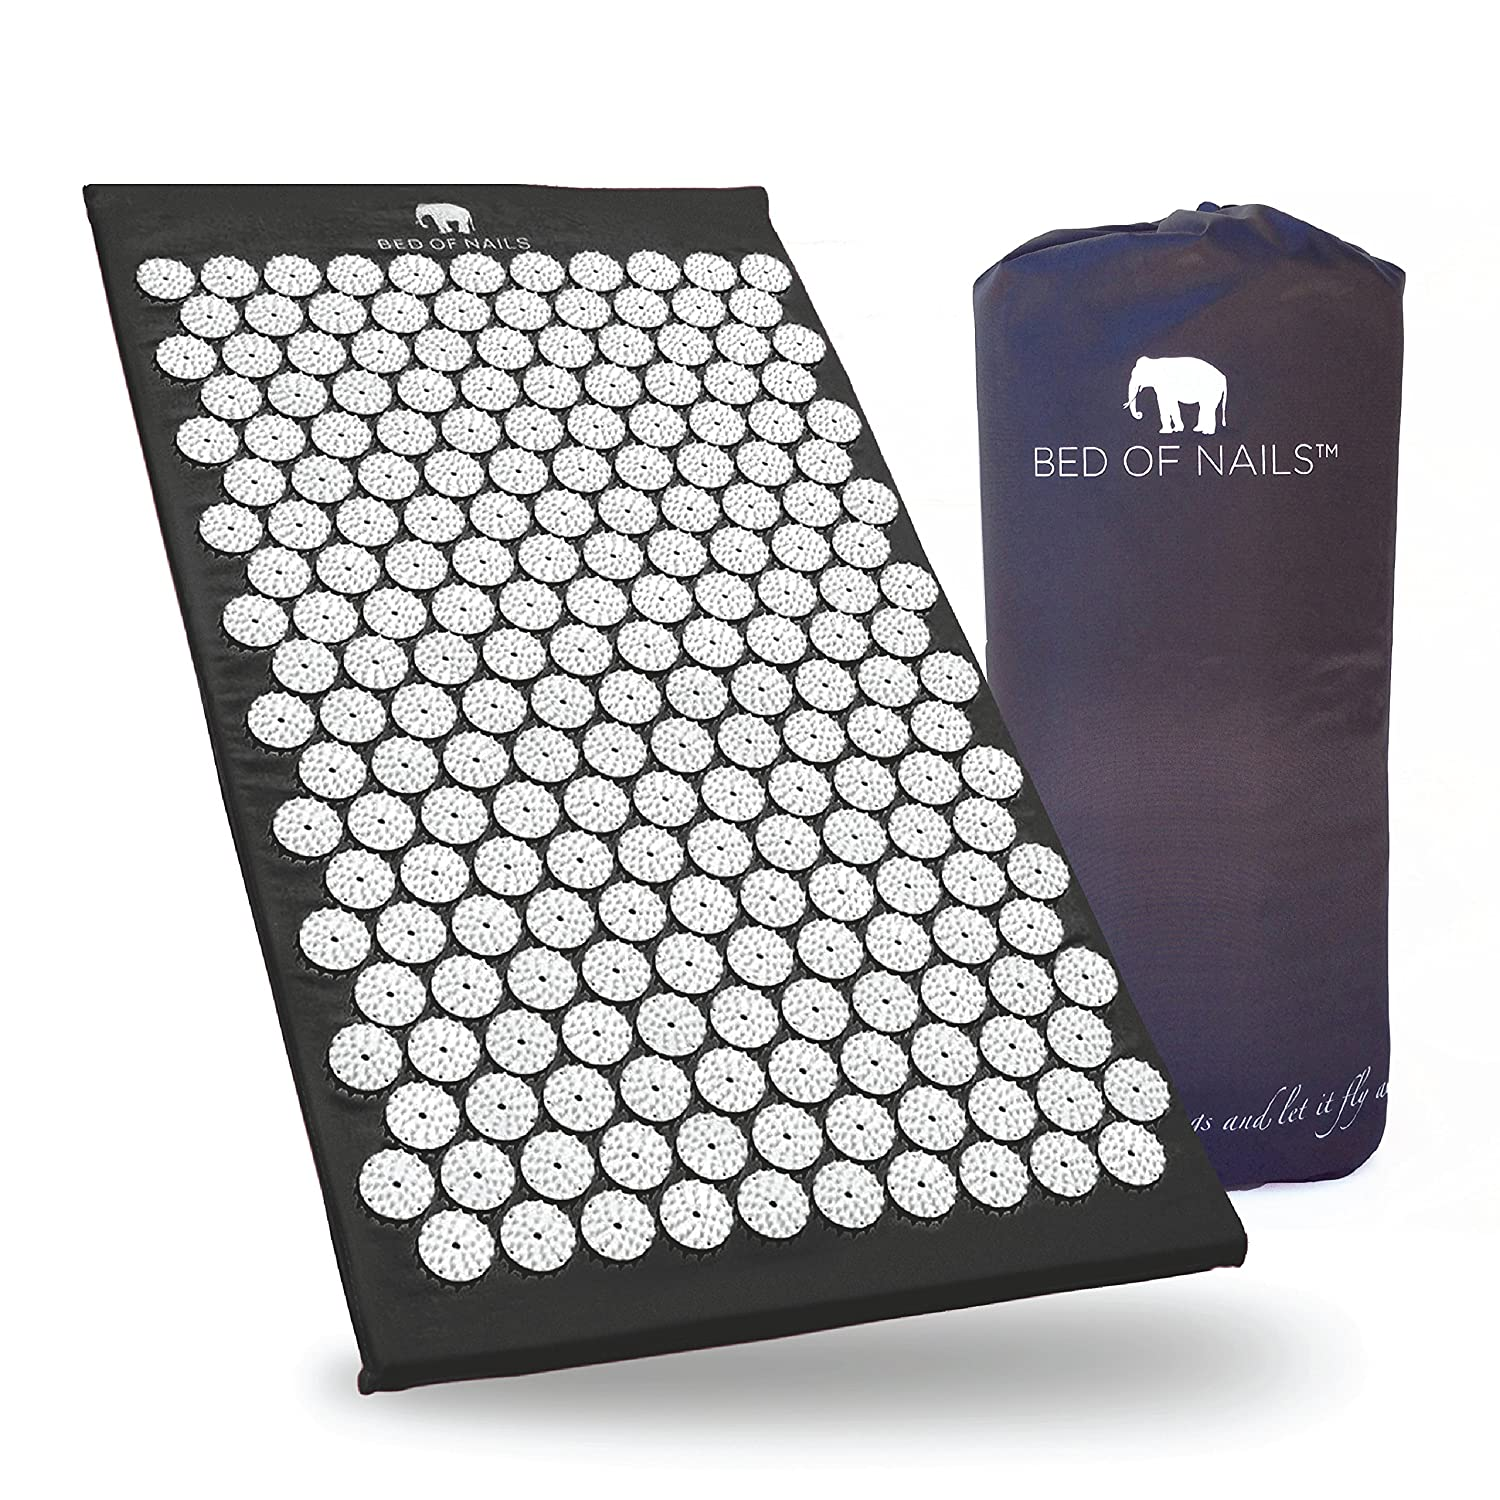 Bed of Nails Original Acupressure Mat for Back/Body Pain Treatment, Relaxation and Mindfulness, Black Bed of Nails inc. 1910